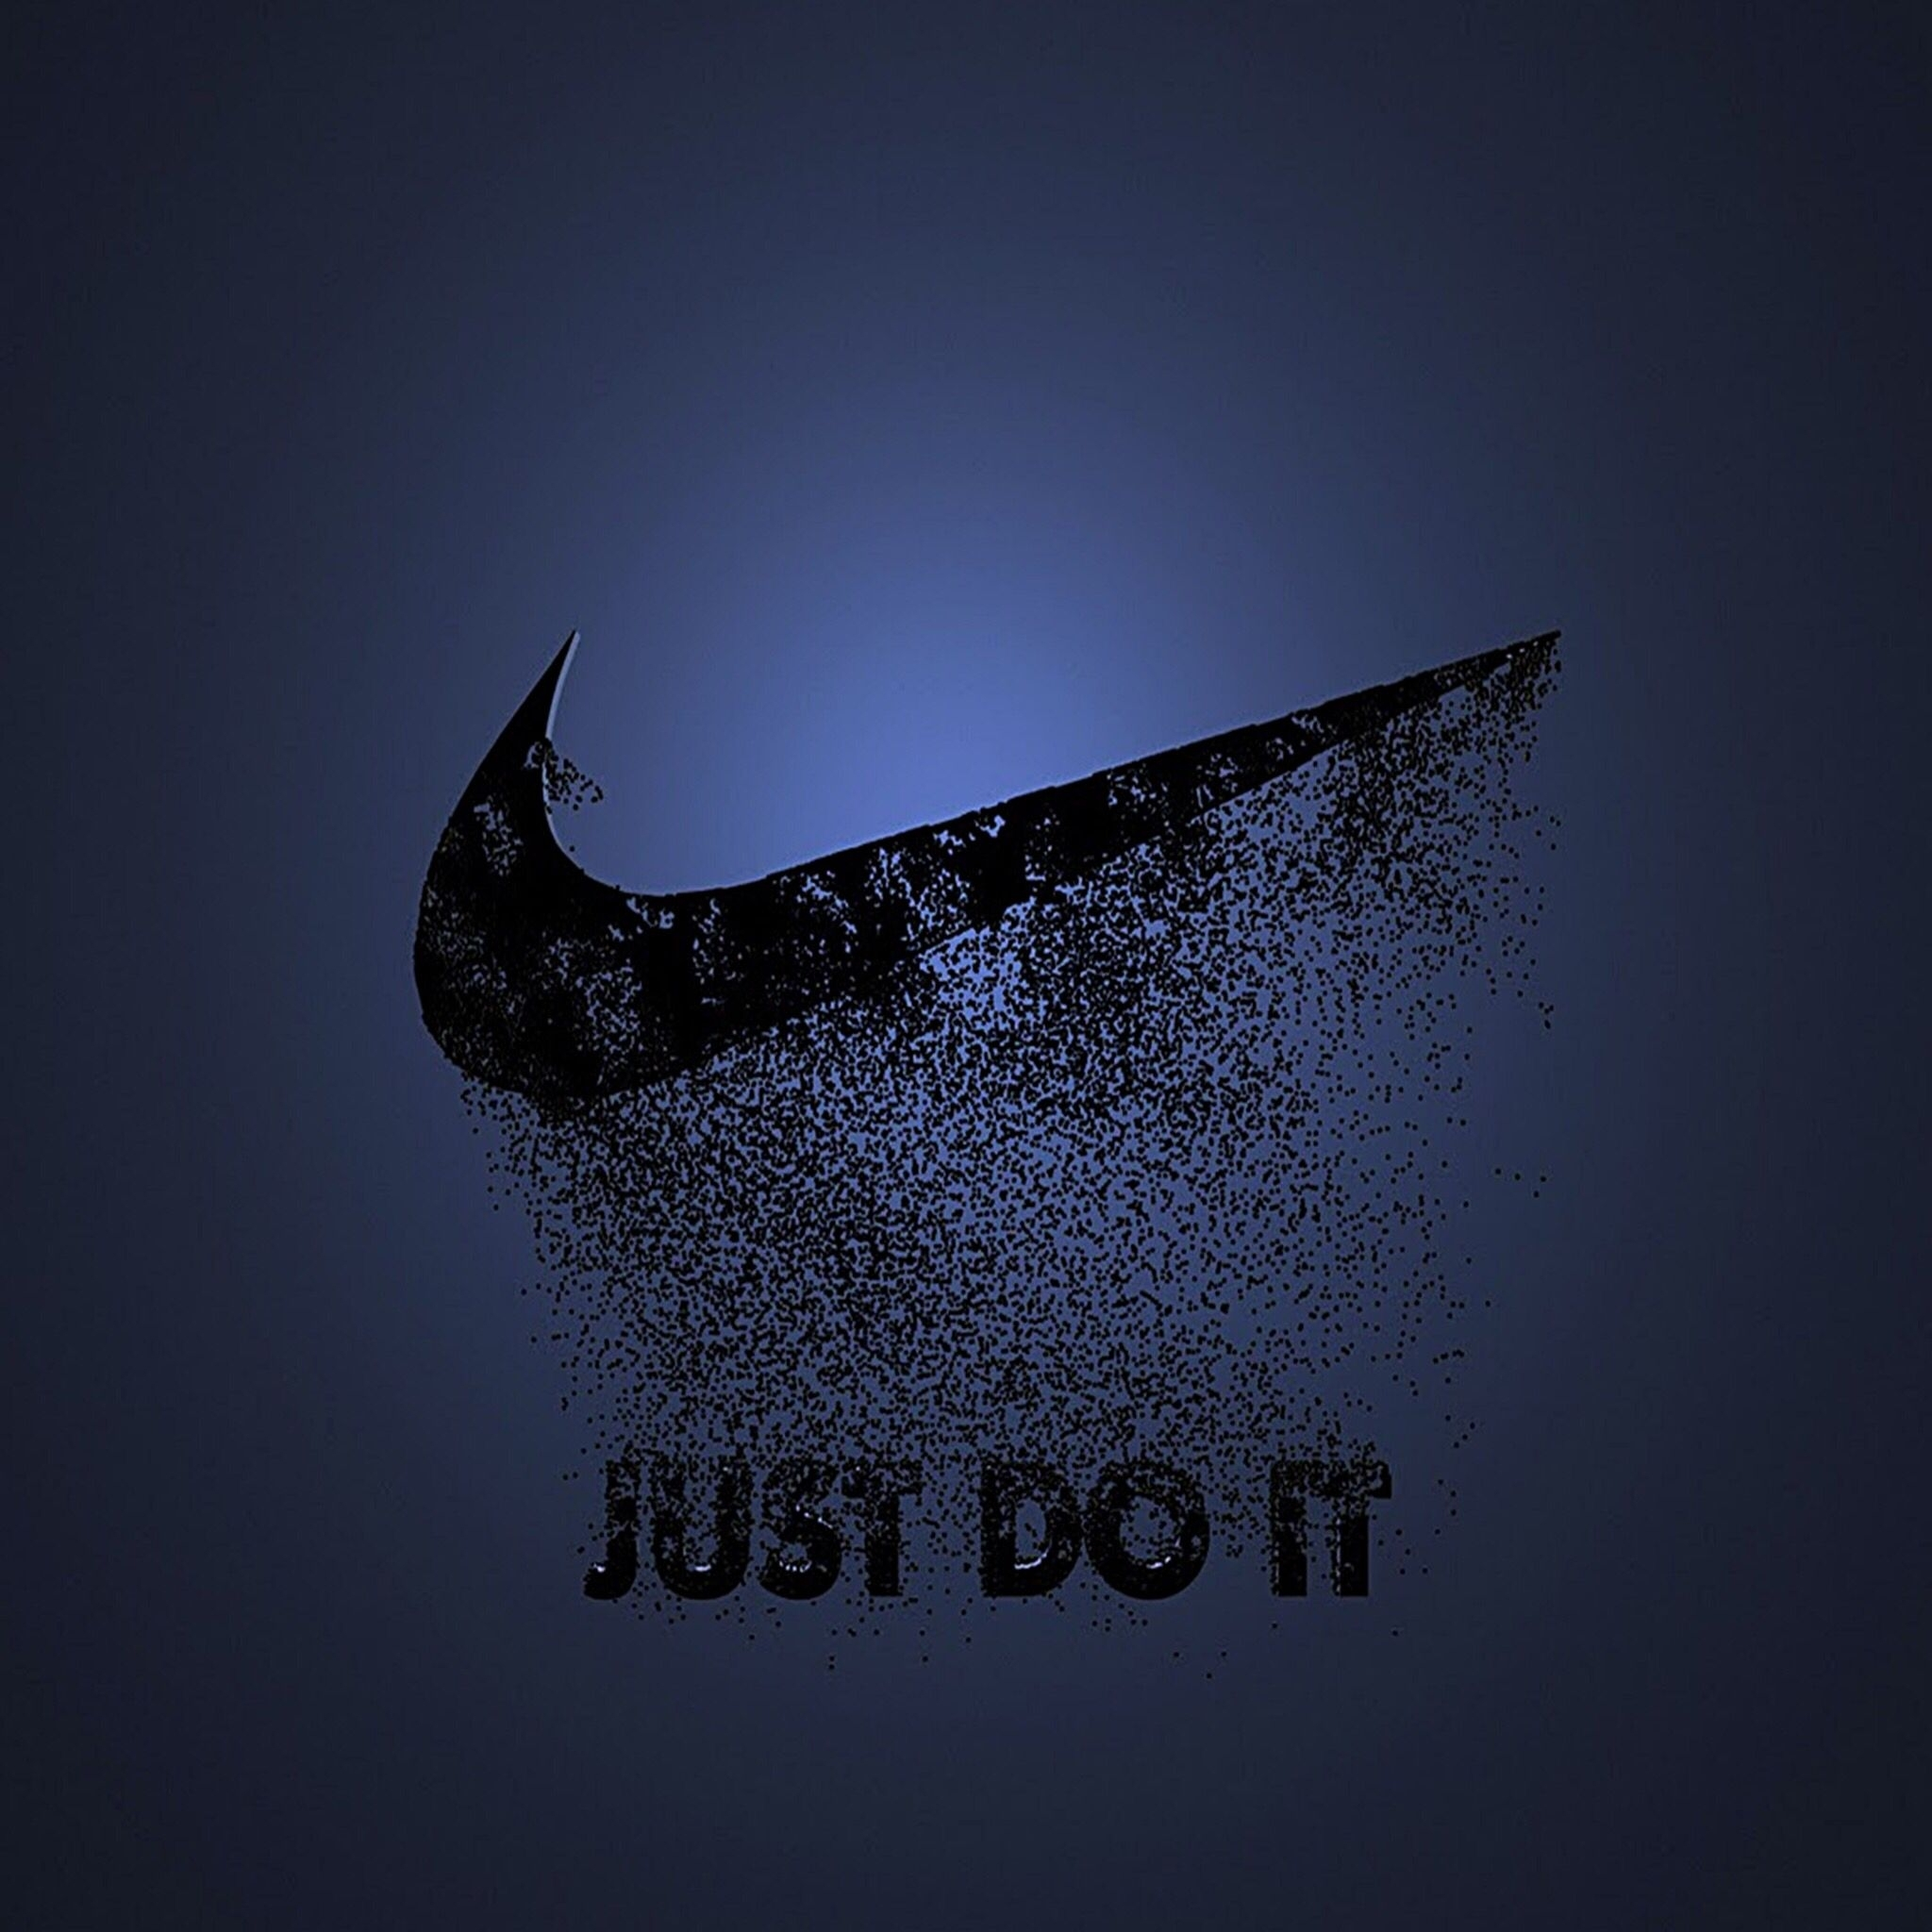 10 Top Just Do It Nike Wallpapers FULL HD 1920×1080 For PC ...